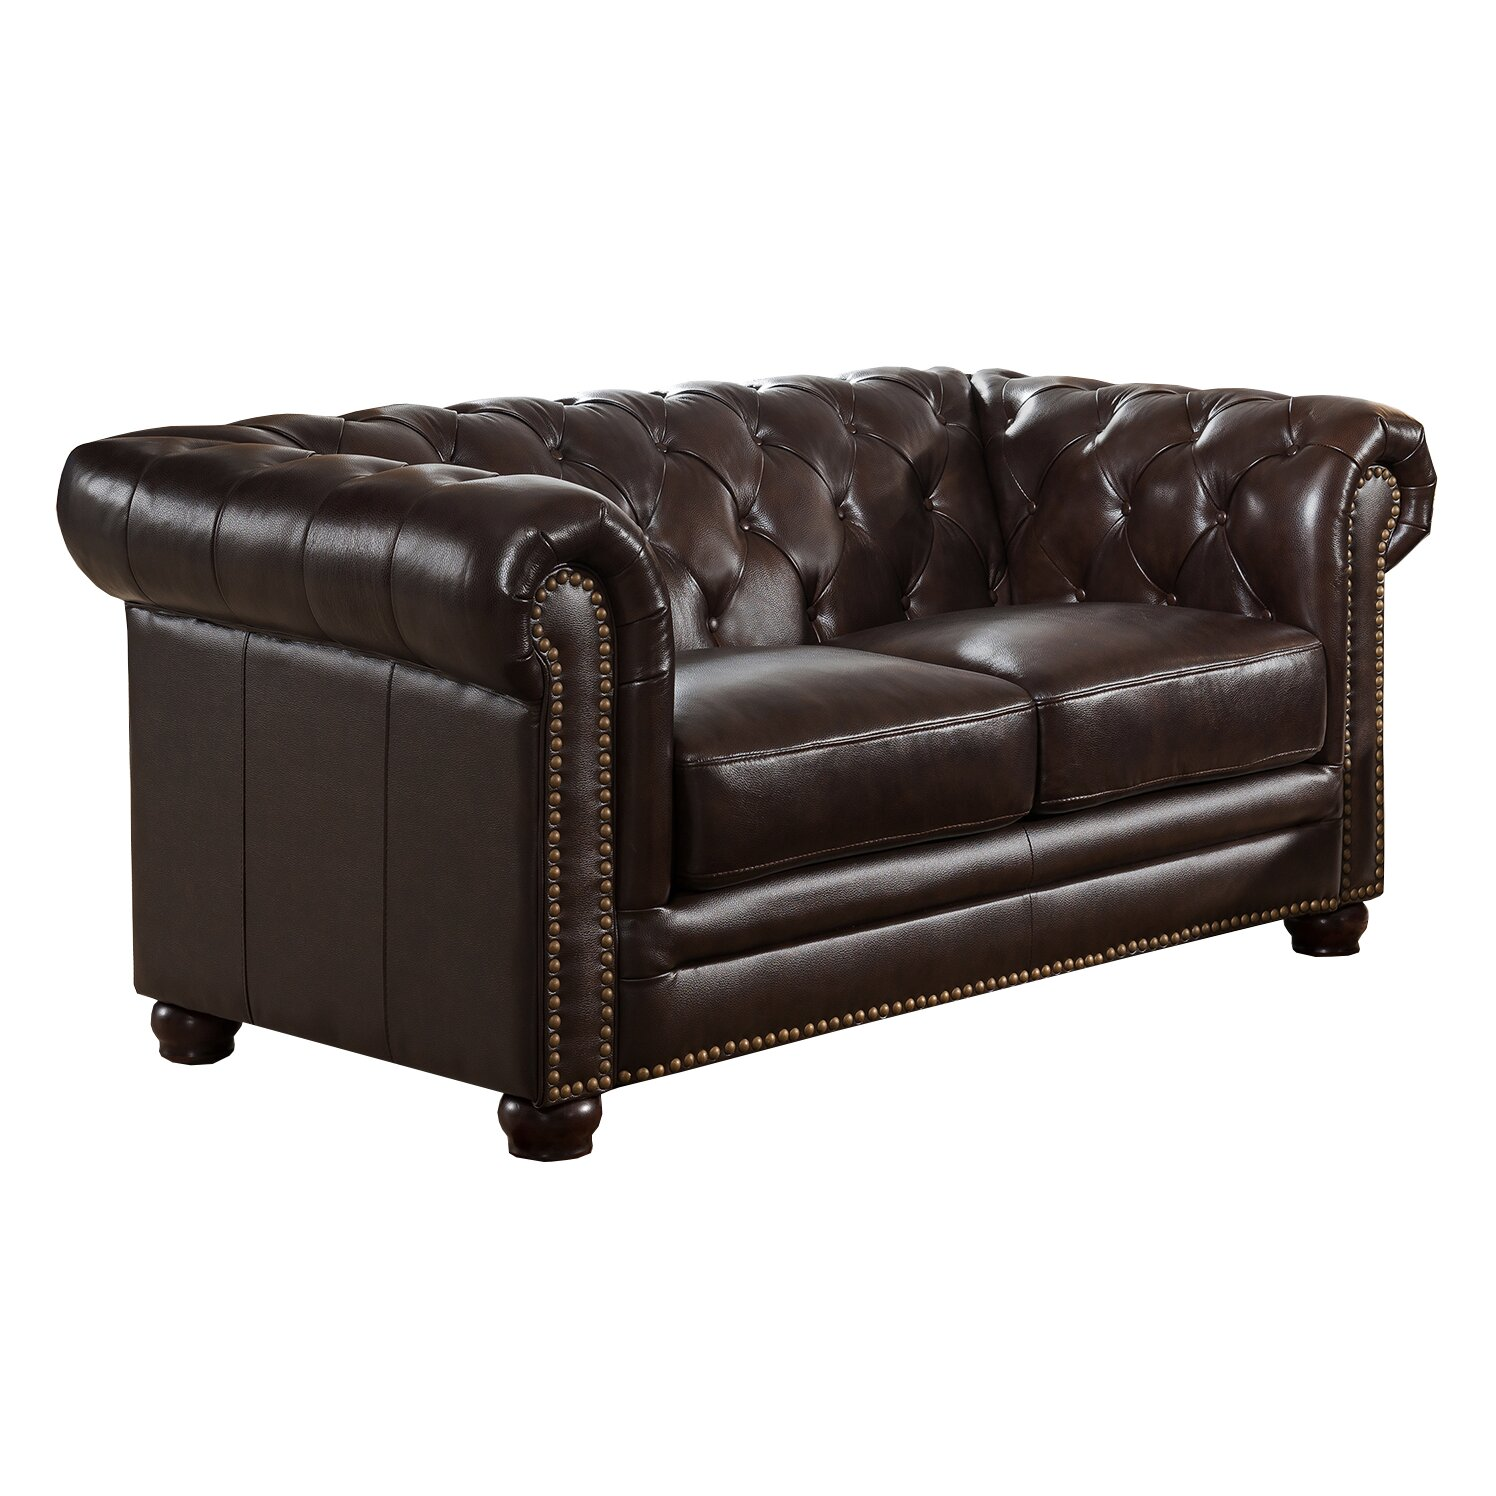 Amax kensington top grain leather chesterfield sofa loveseat and chair set wayfair Leather chesterfield loveseat